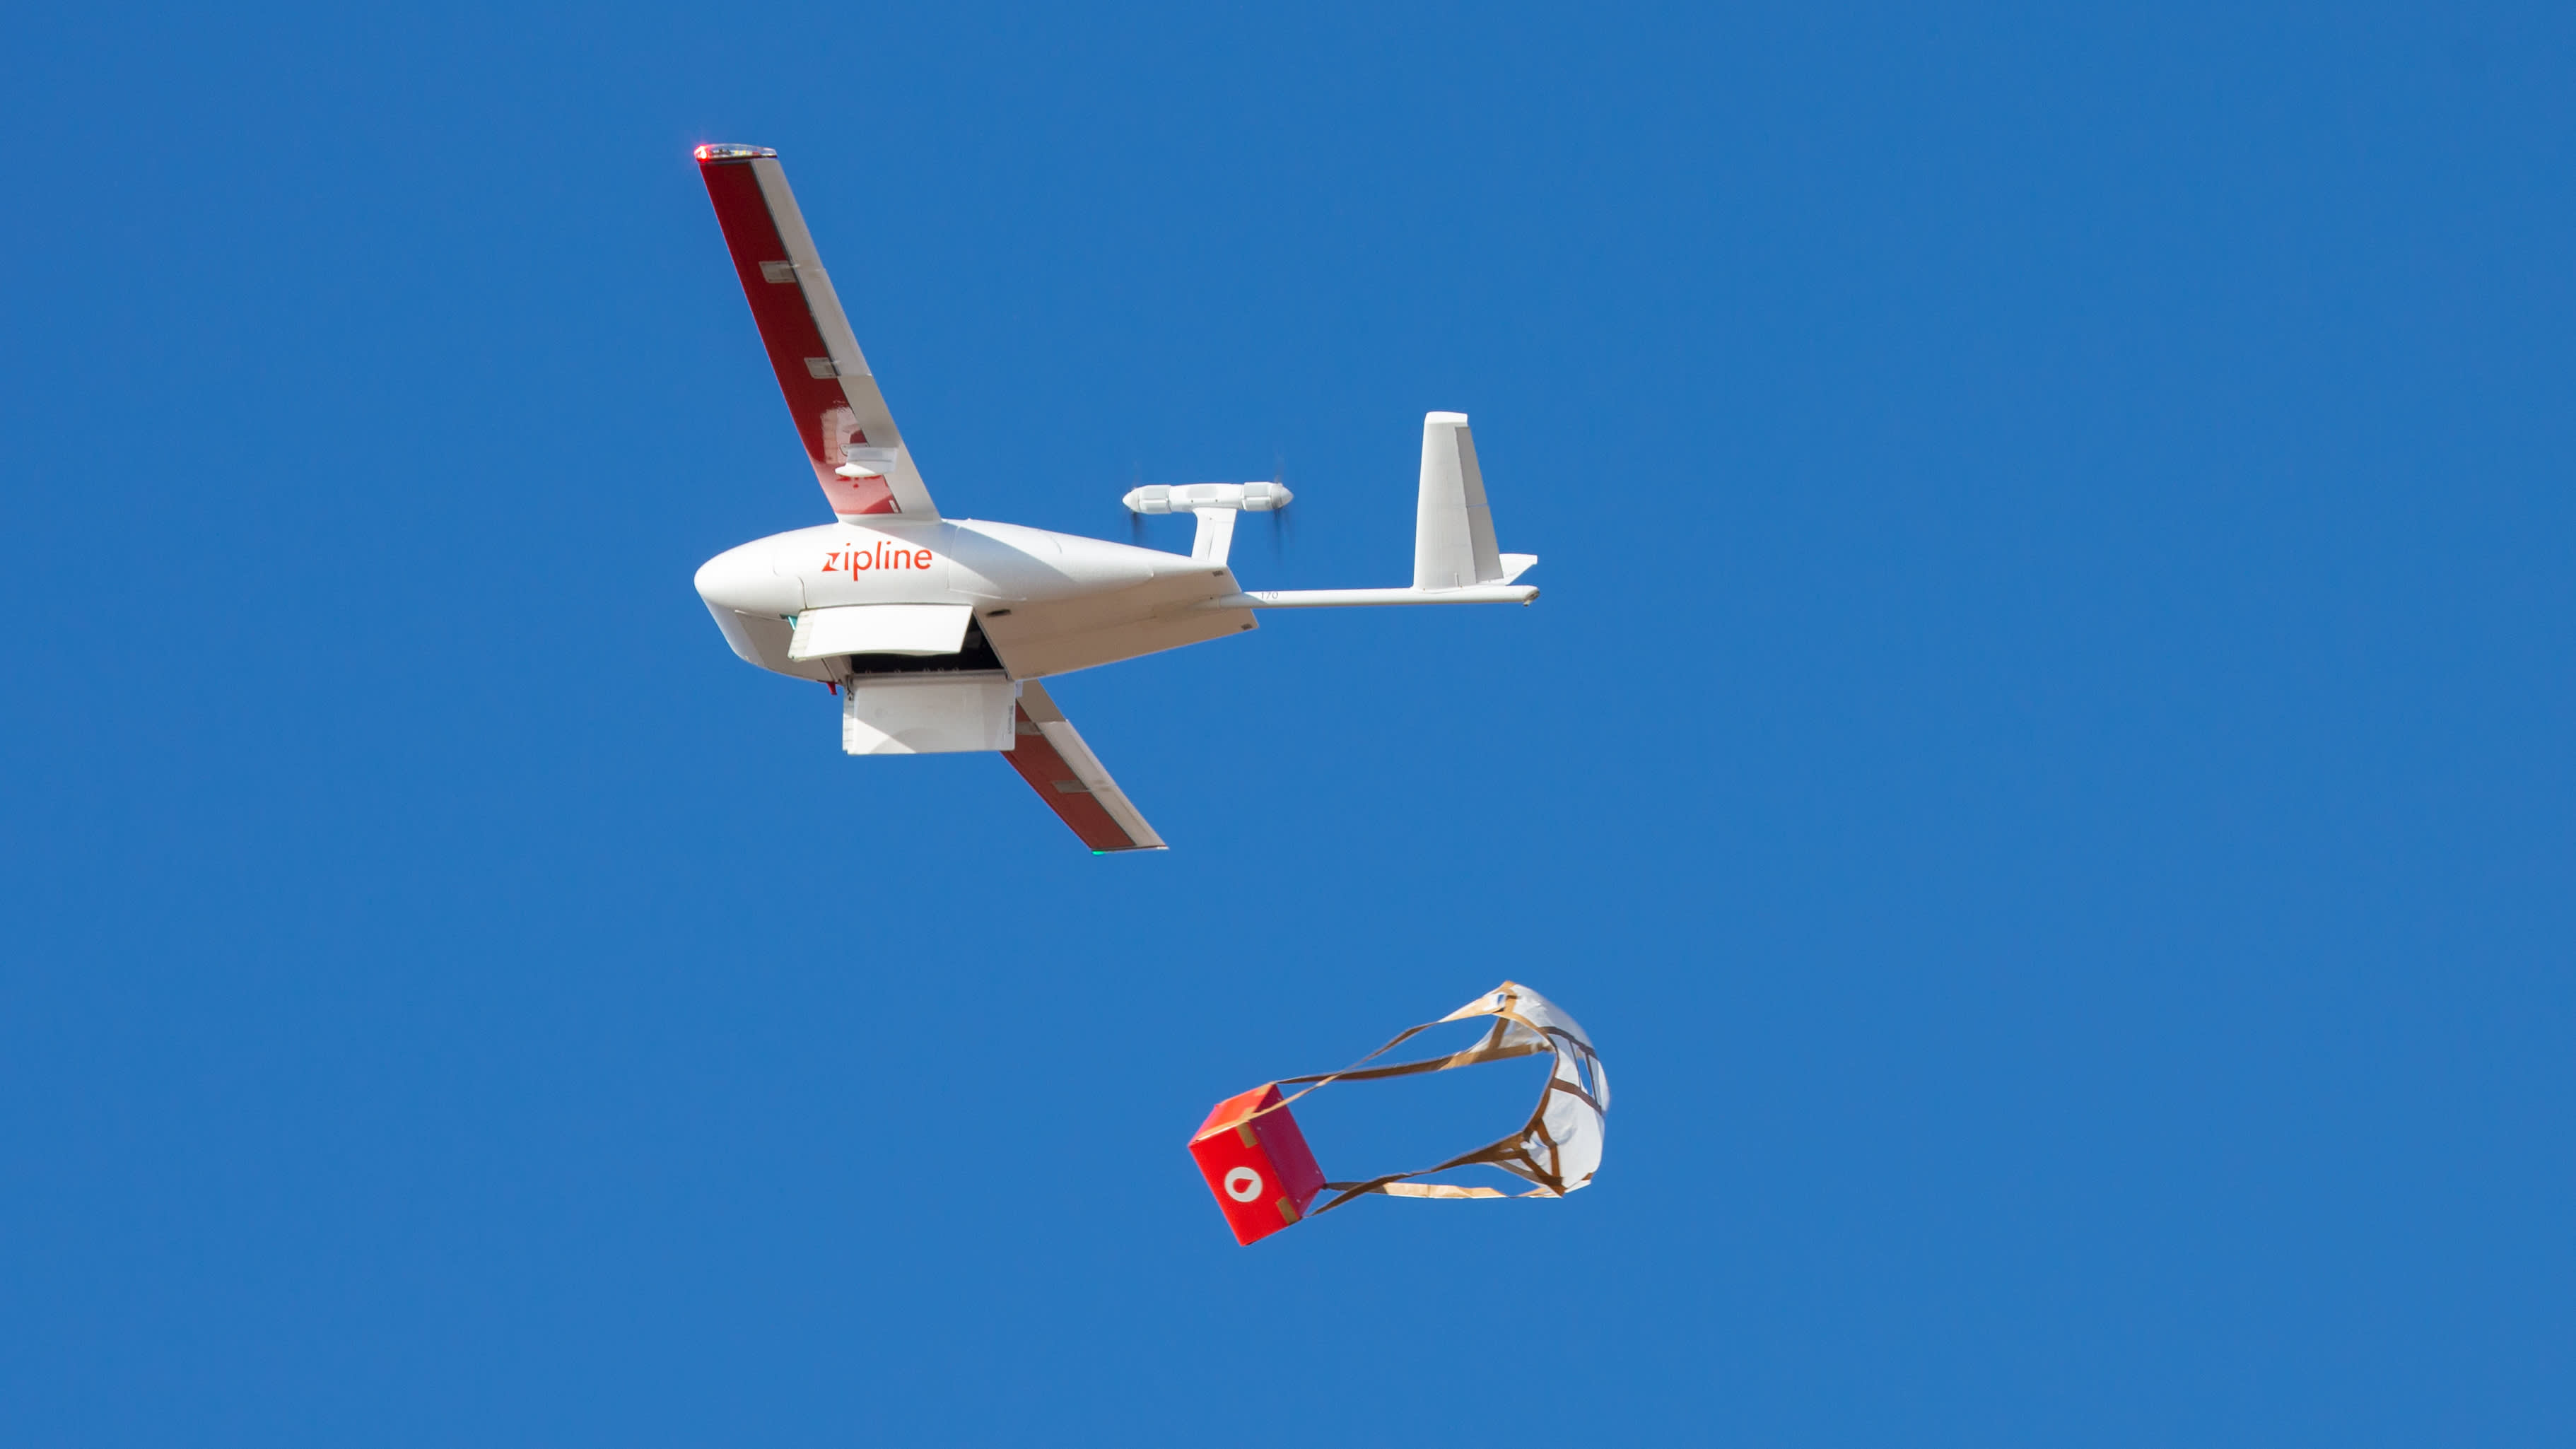 Zipline, which delivers lifesaving medical supplies by drone, now valued at $1.2 billion